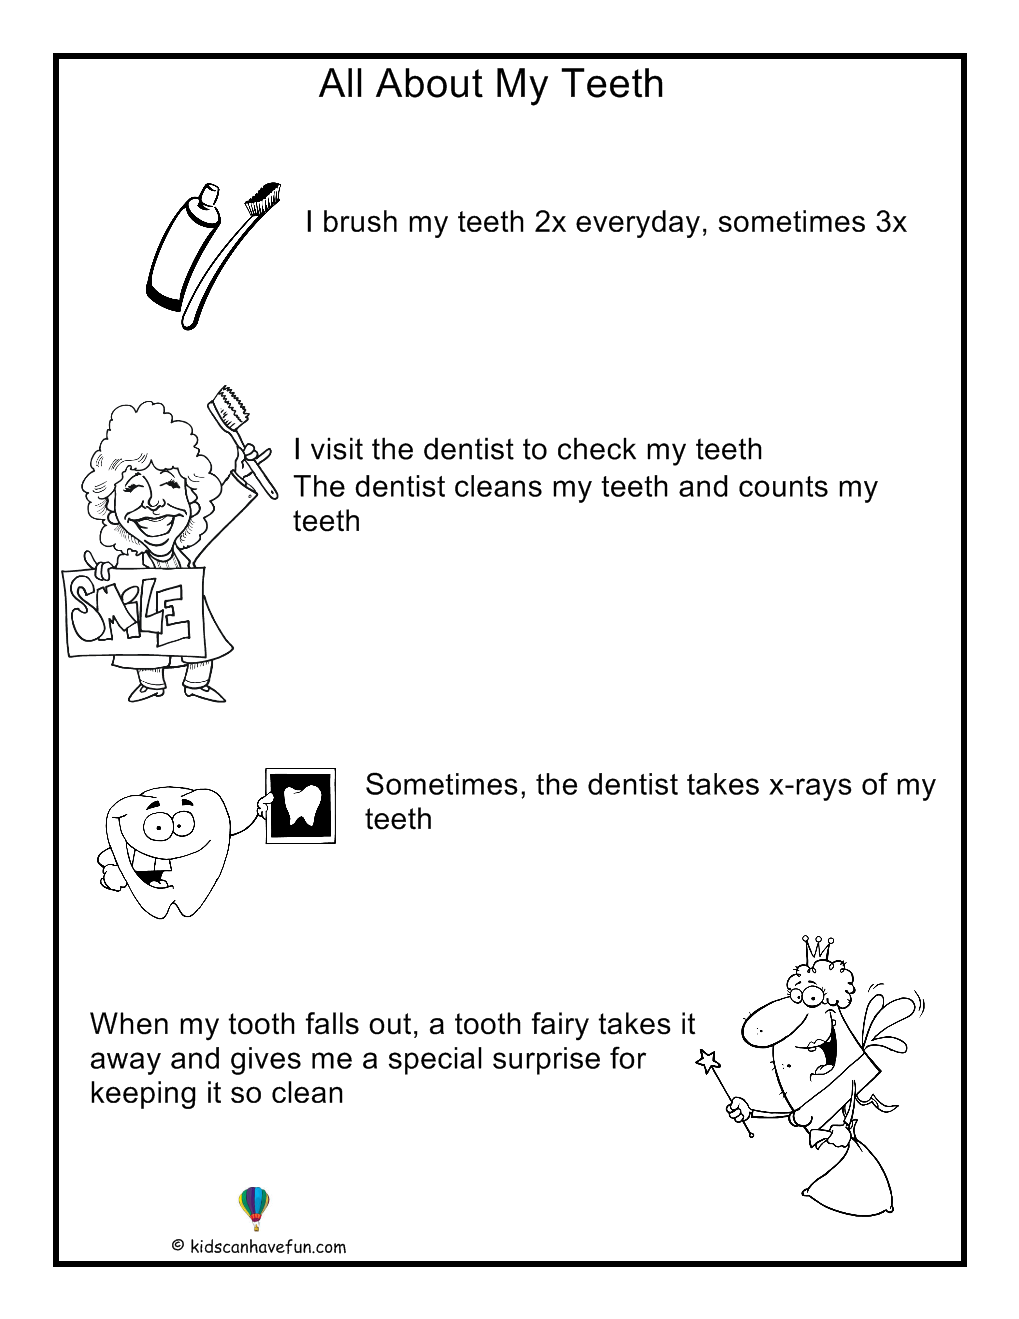 About My Teeth Poster For Kids